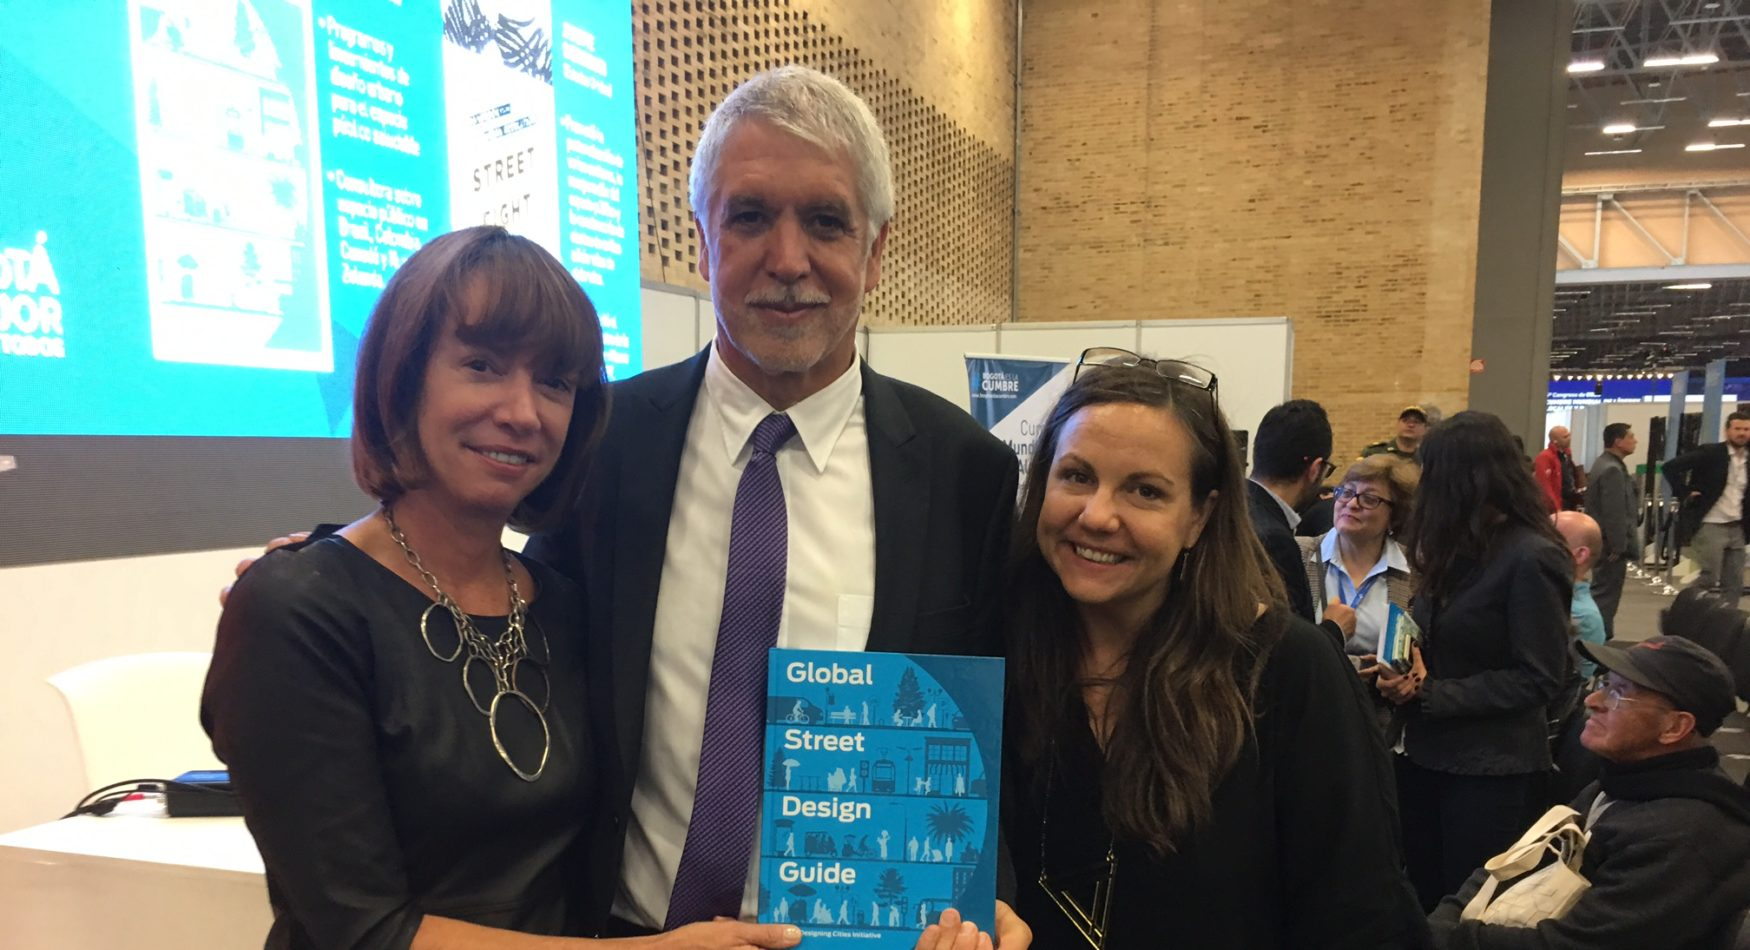 Picture of Janette Sadik-Khan, The Mayor of Bogota, and Skye Duncan holding the Global Streets Design Guide